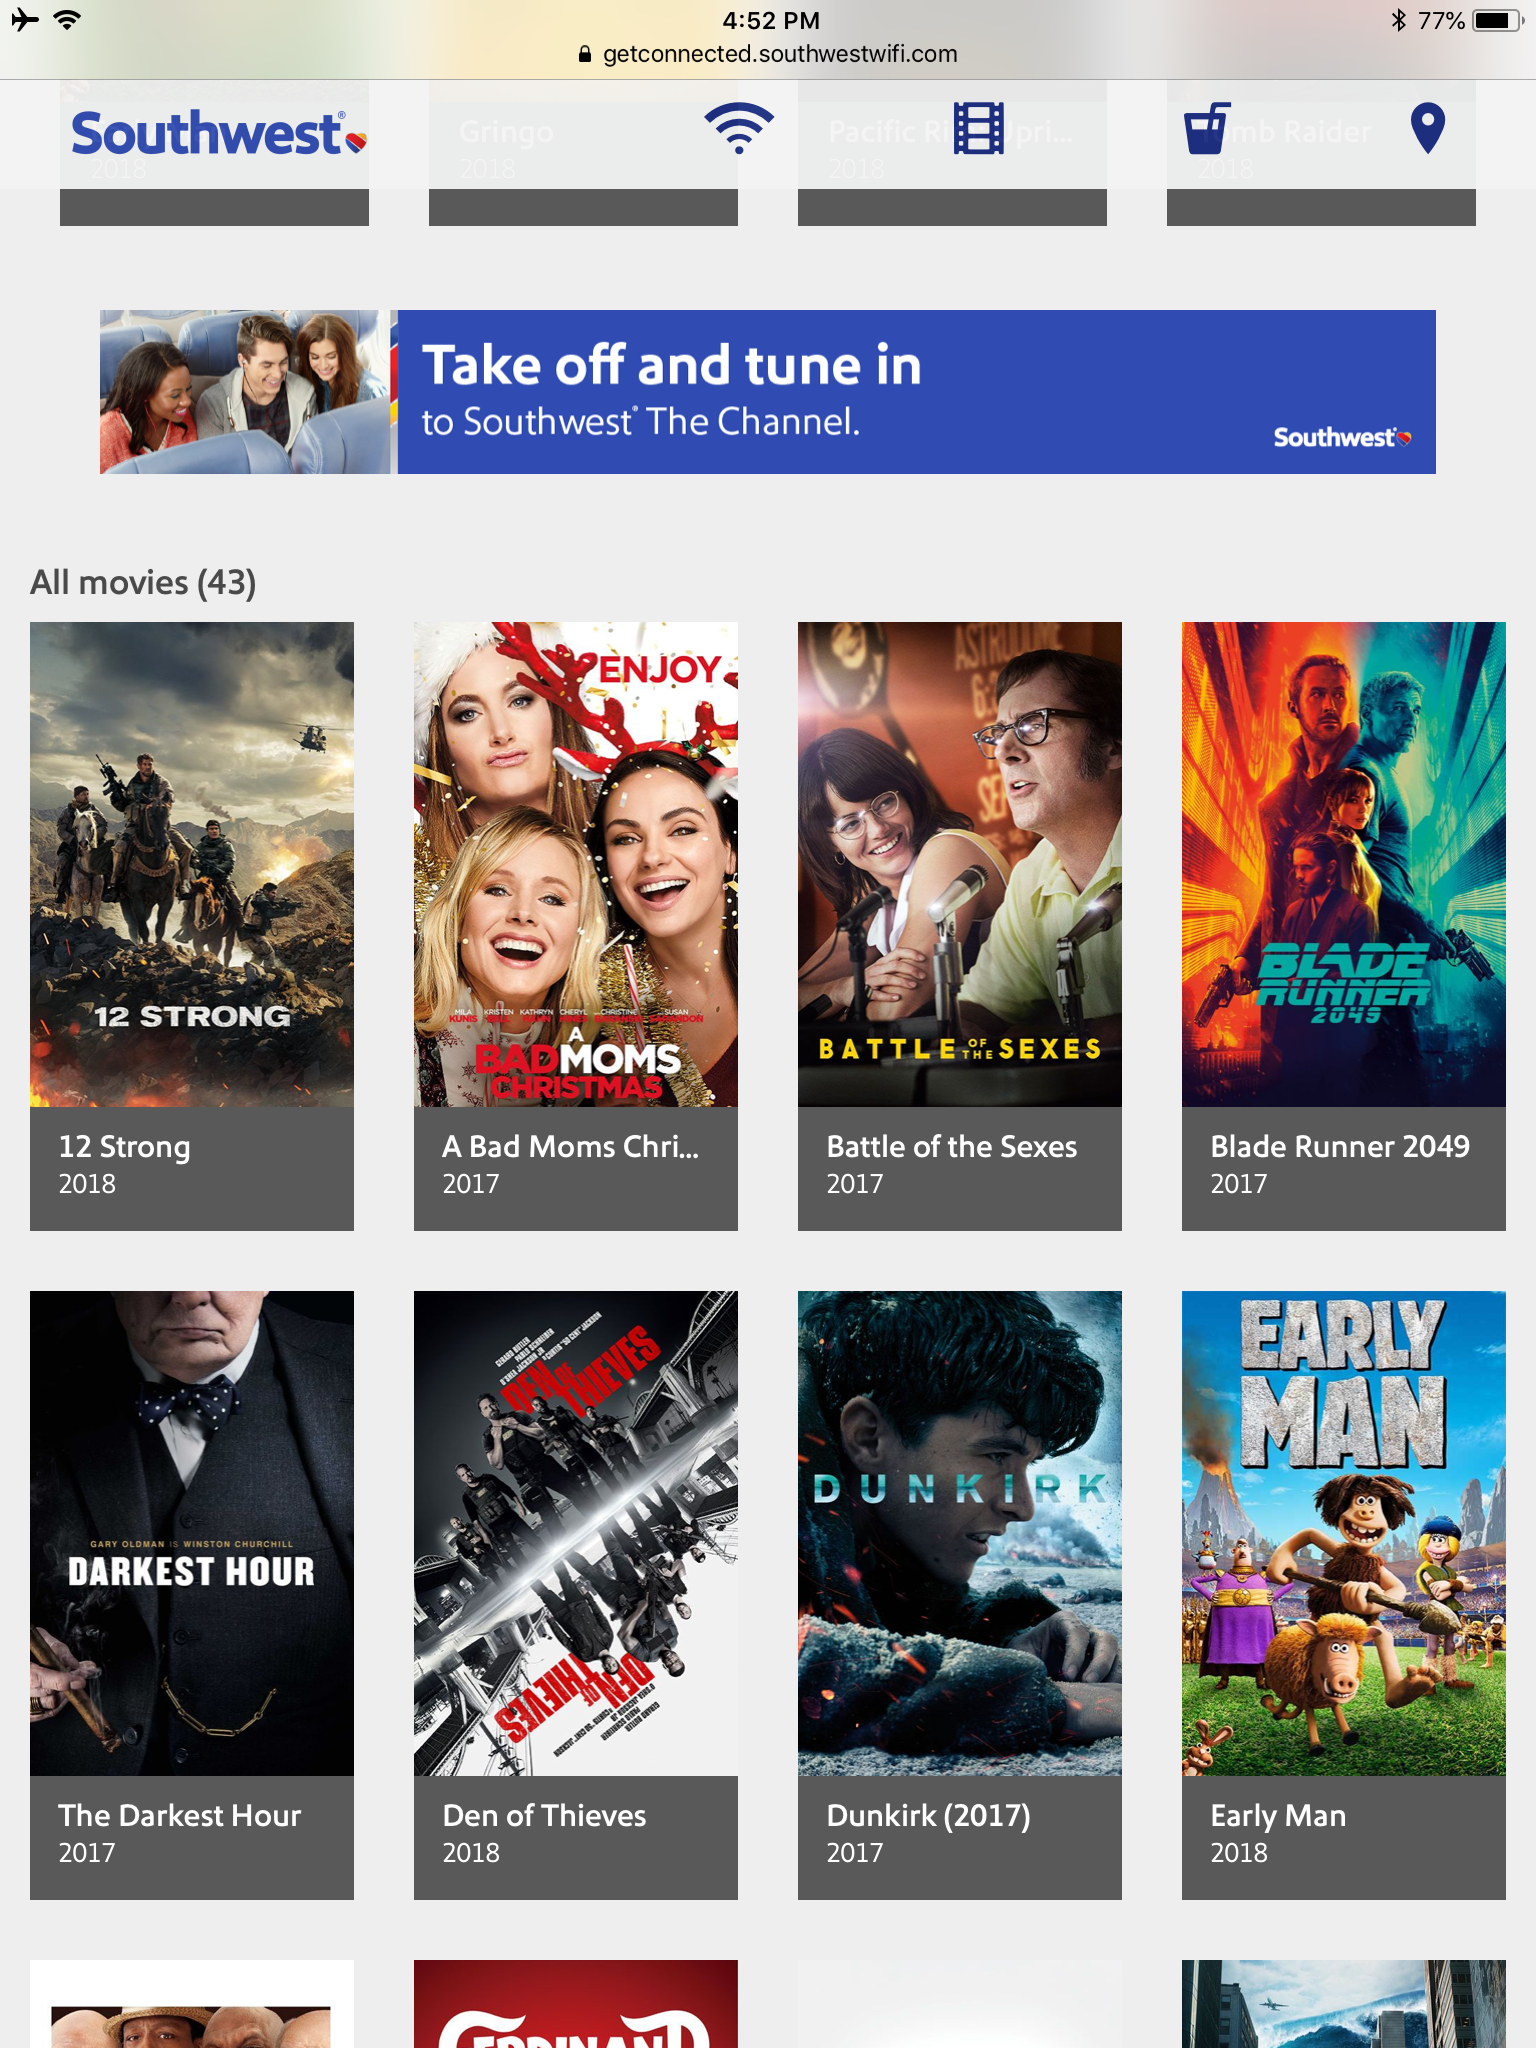 apps to watch movies on southwest